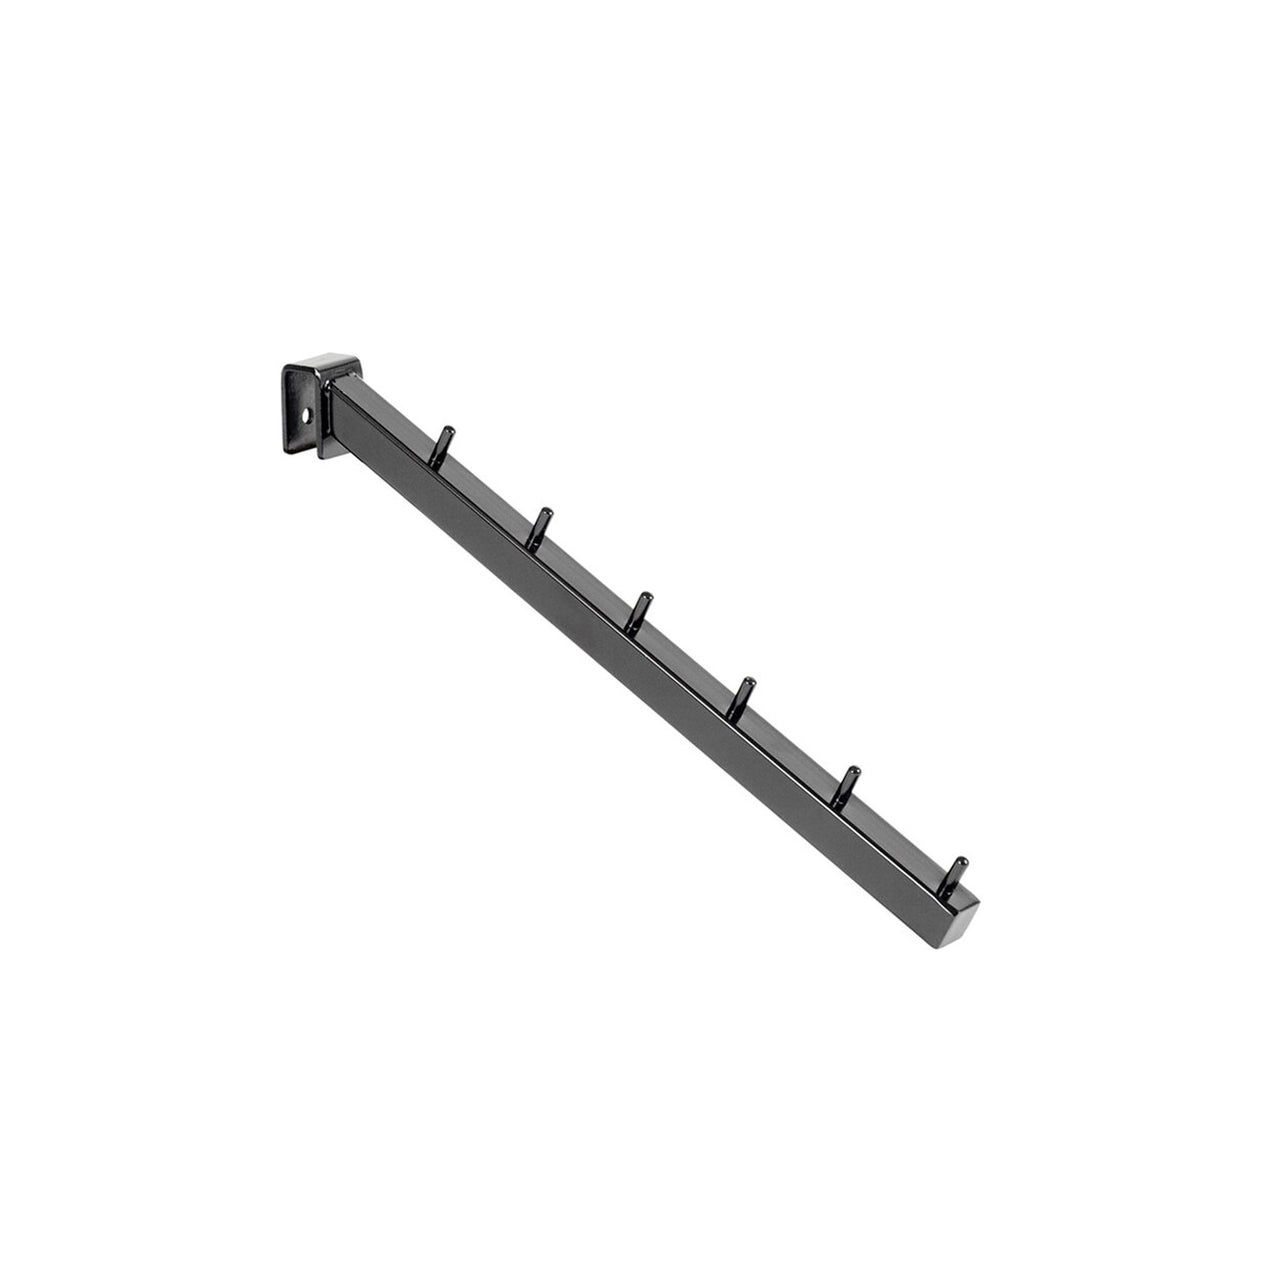 MAXe backrail waterfall arm with 6 pins 310 mm D  18 x 18 mm section E4842